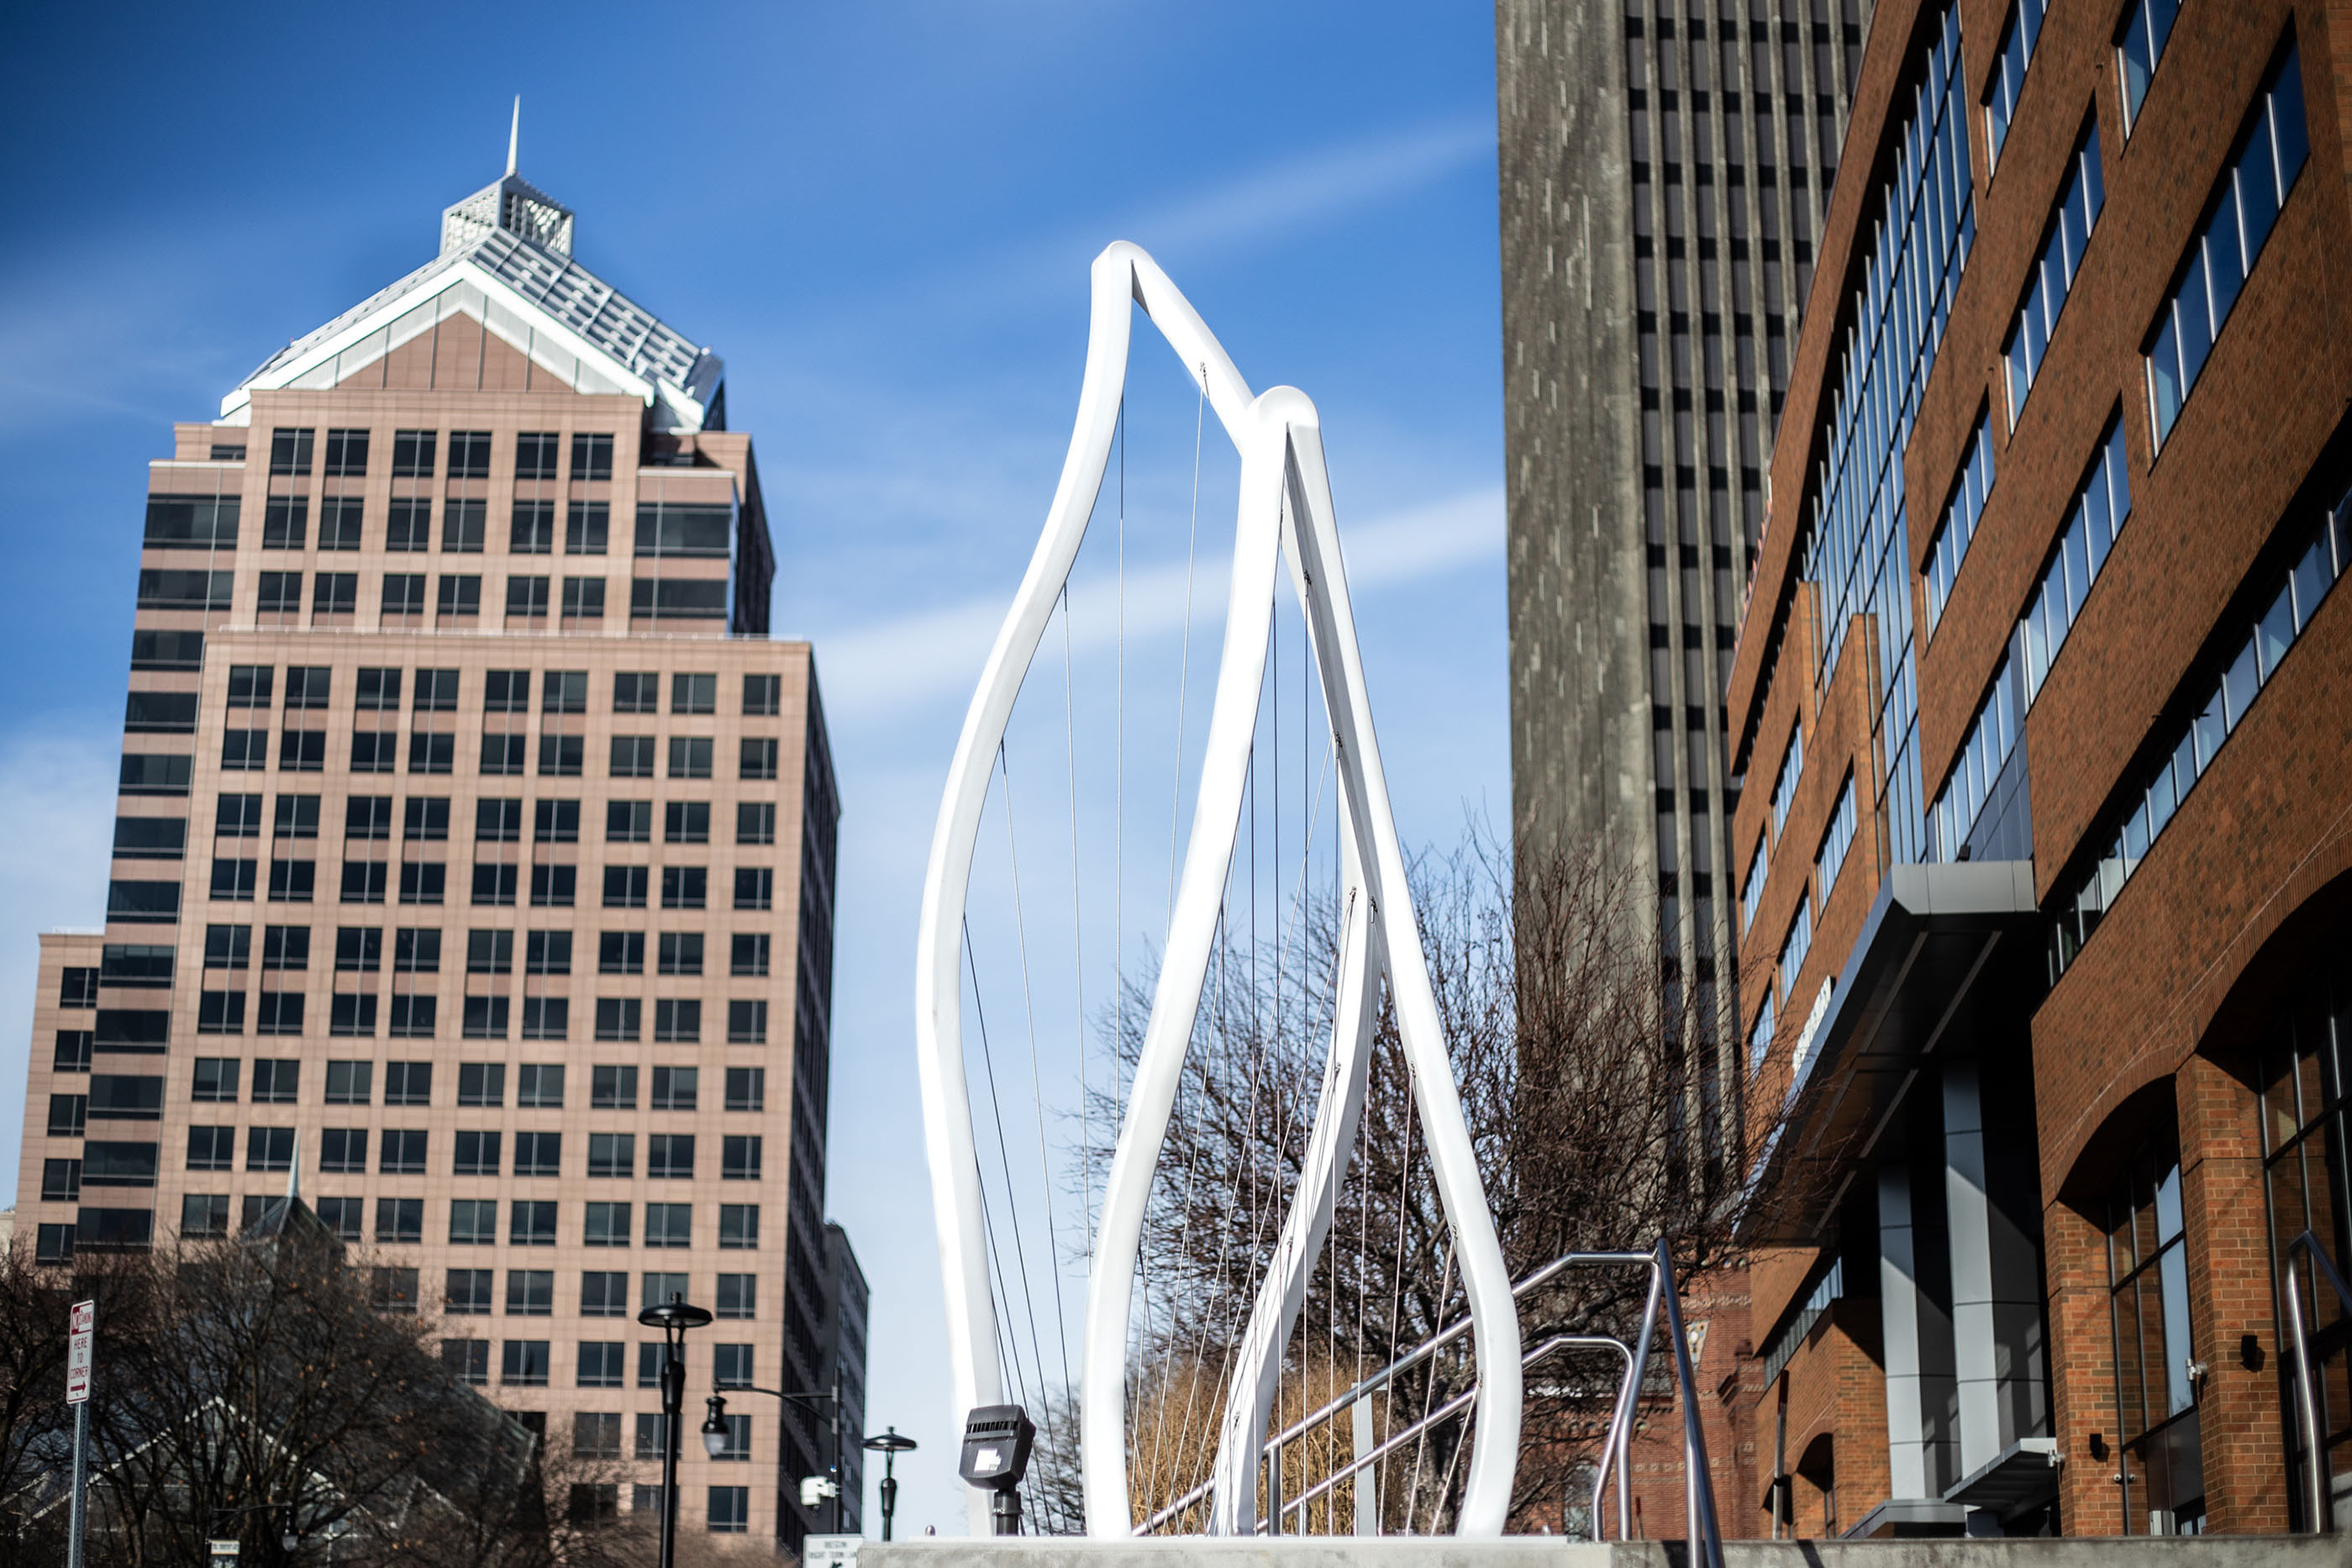 Julia Manson's second downtown Rochester sculpture sits in front of the 3 City Center office building.